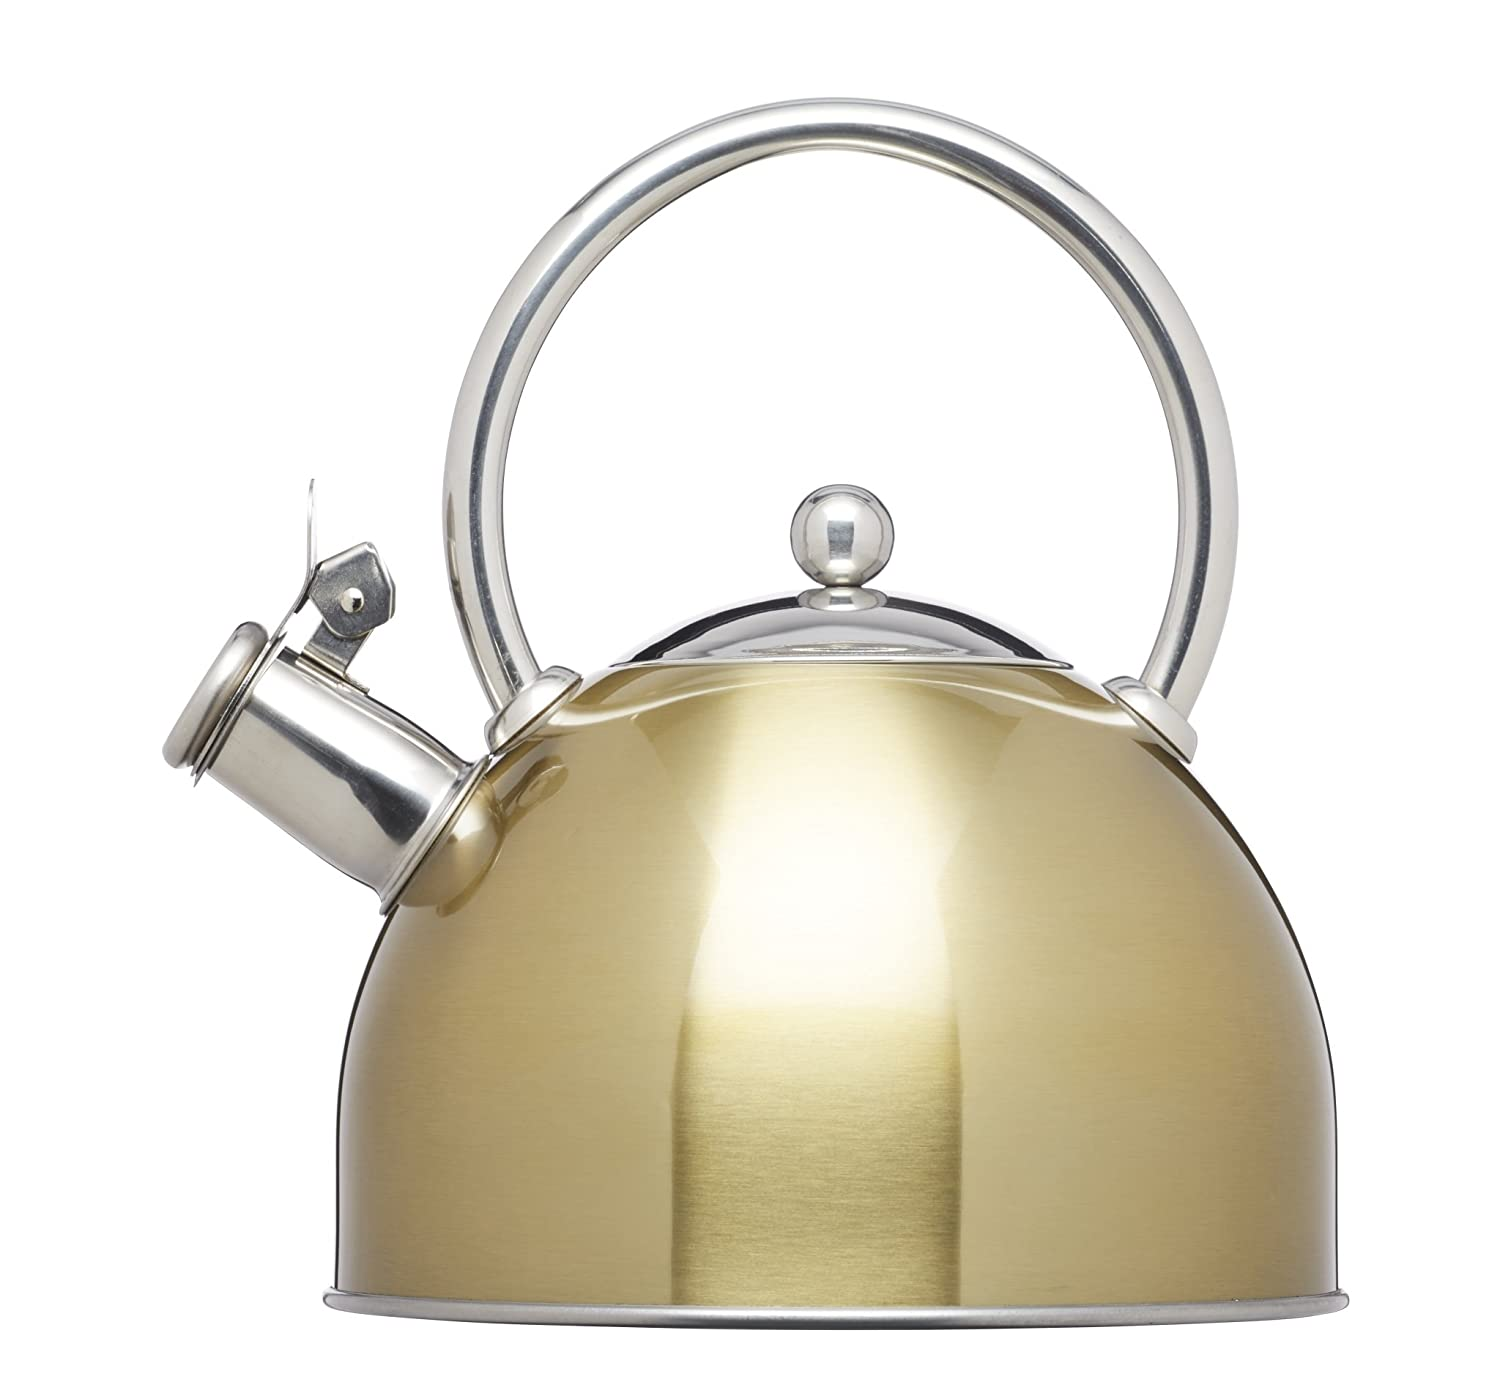 Kitchencraft Le'xpress Induction-Safe Stove-top Whistling Kettle, 1.8 L - Brass KCLXKETBRS